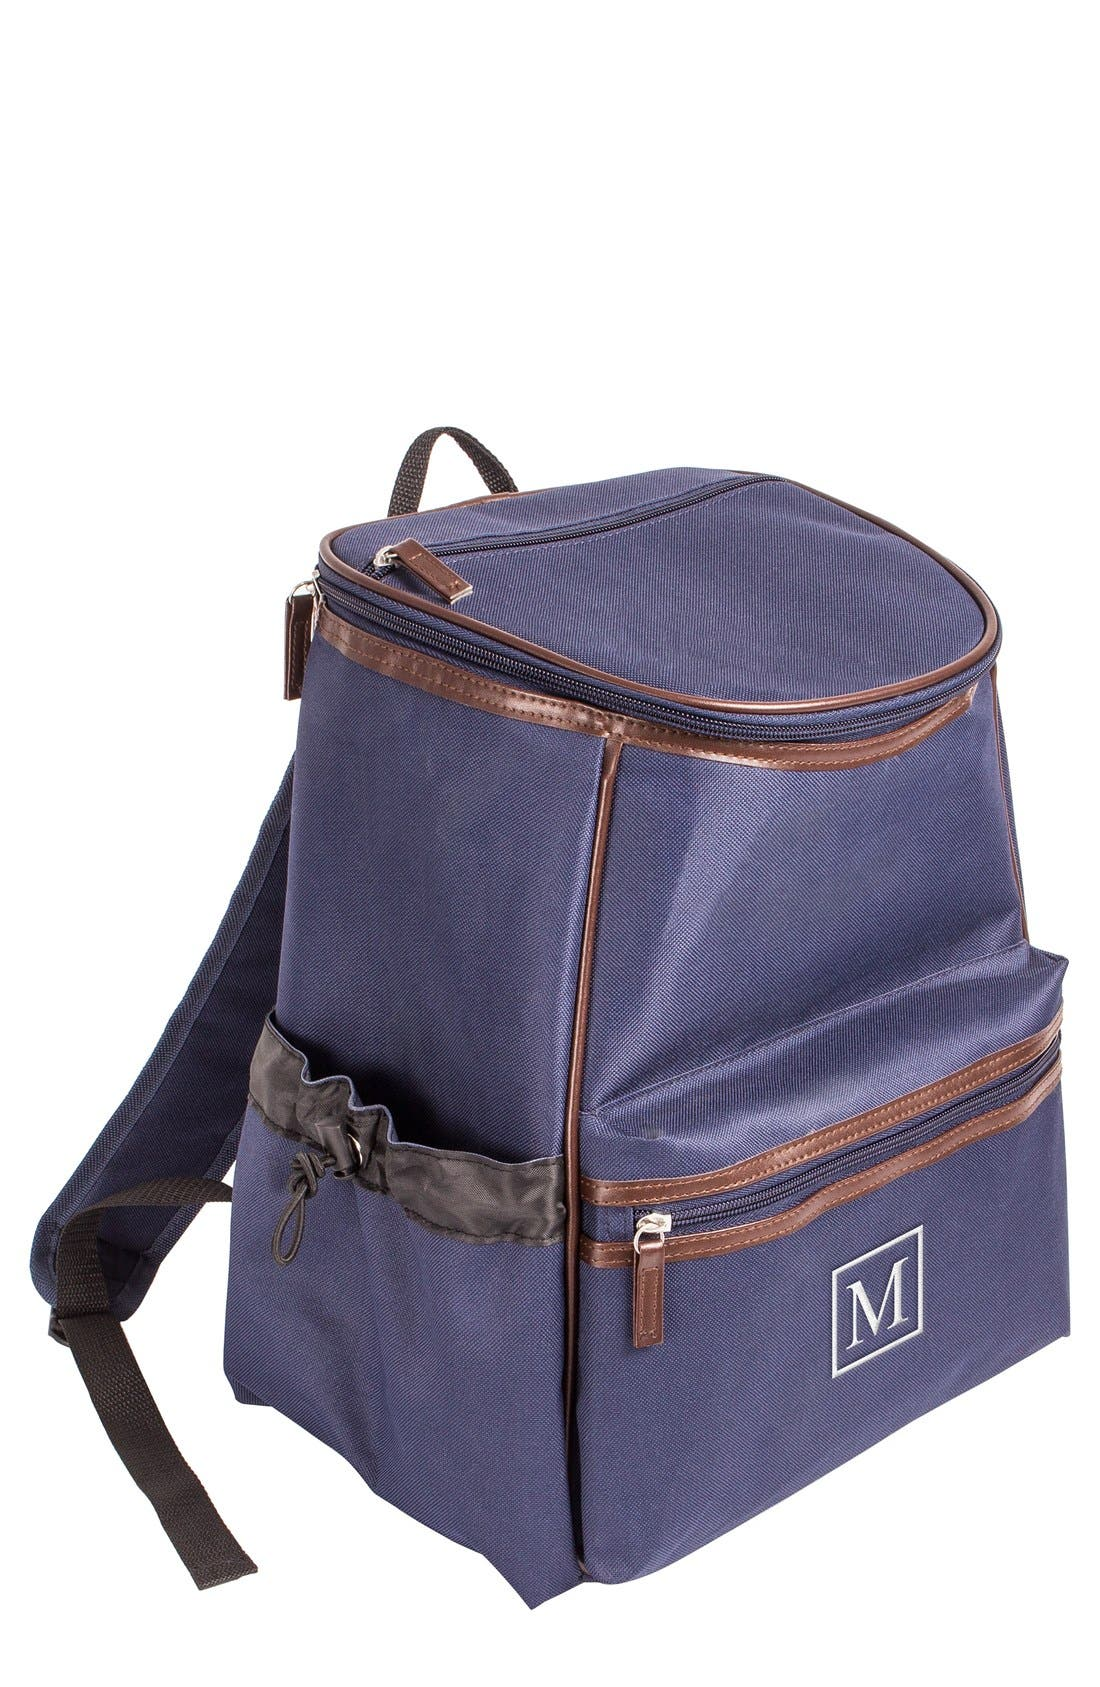 Monogram Insulated Backpack Cooler,                         Main,                         color, Navy - M